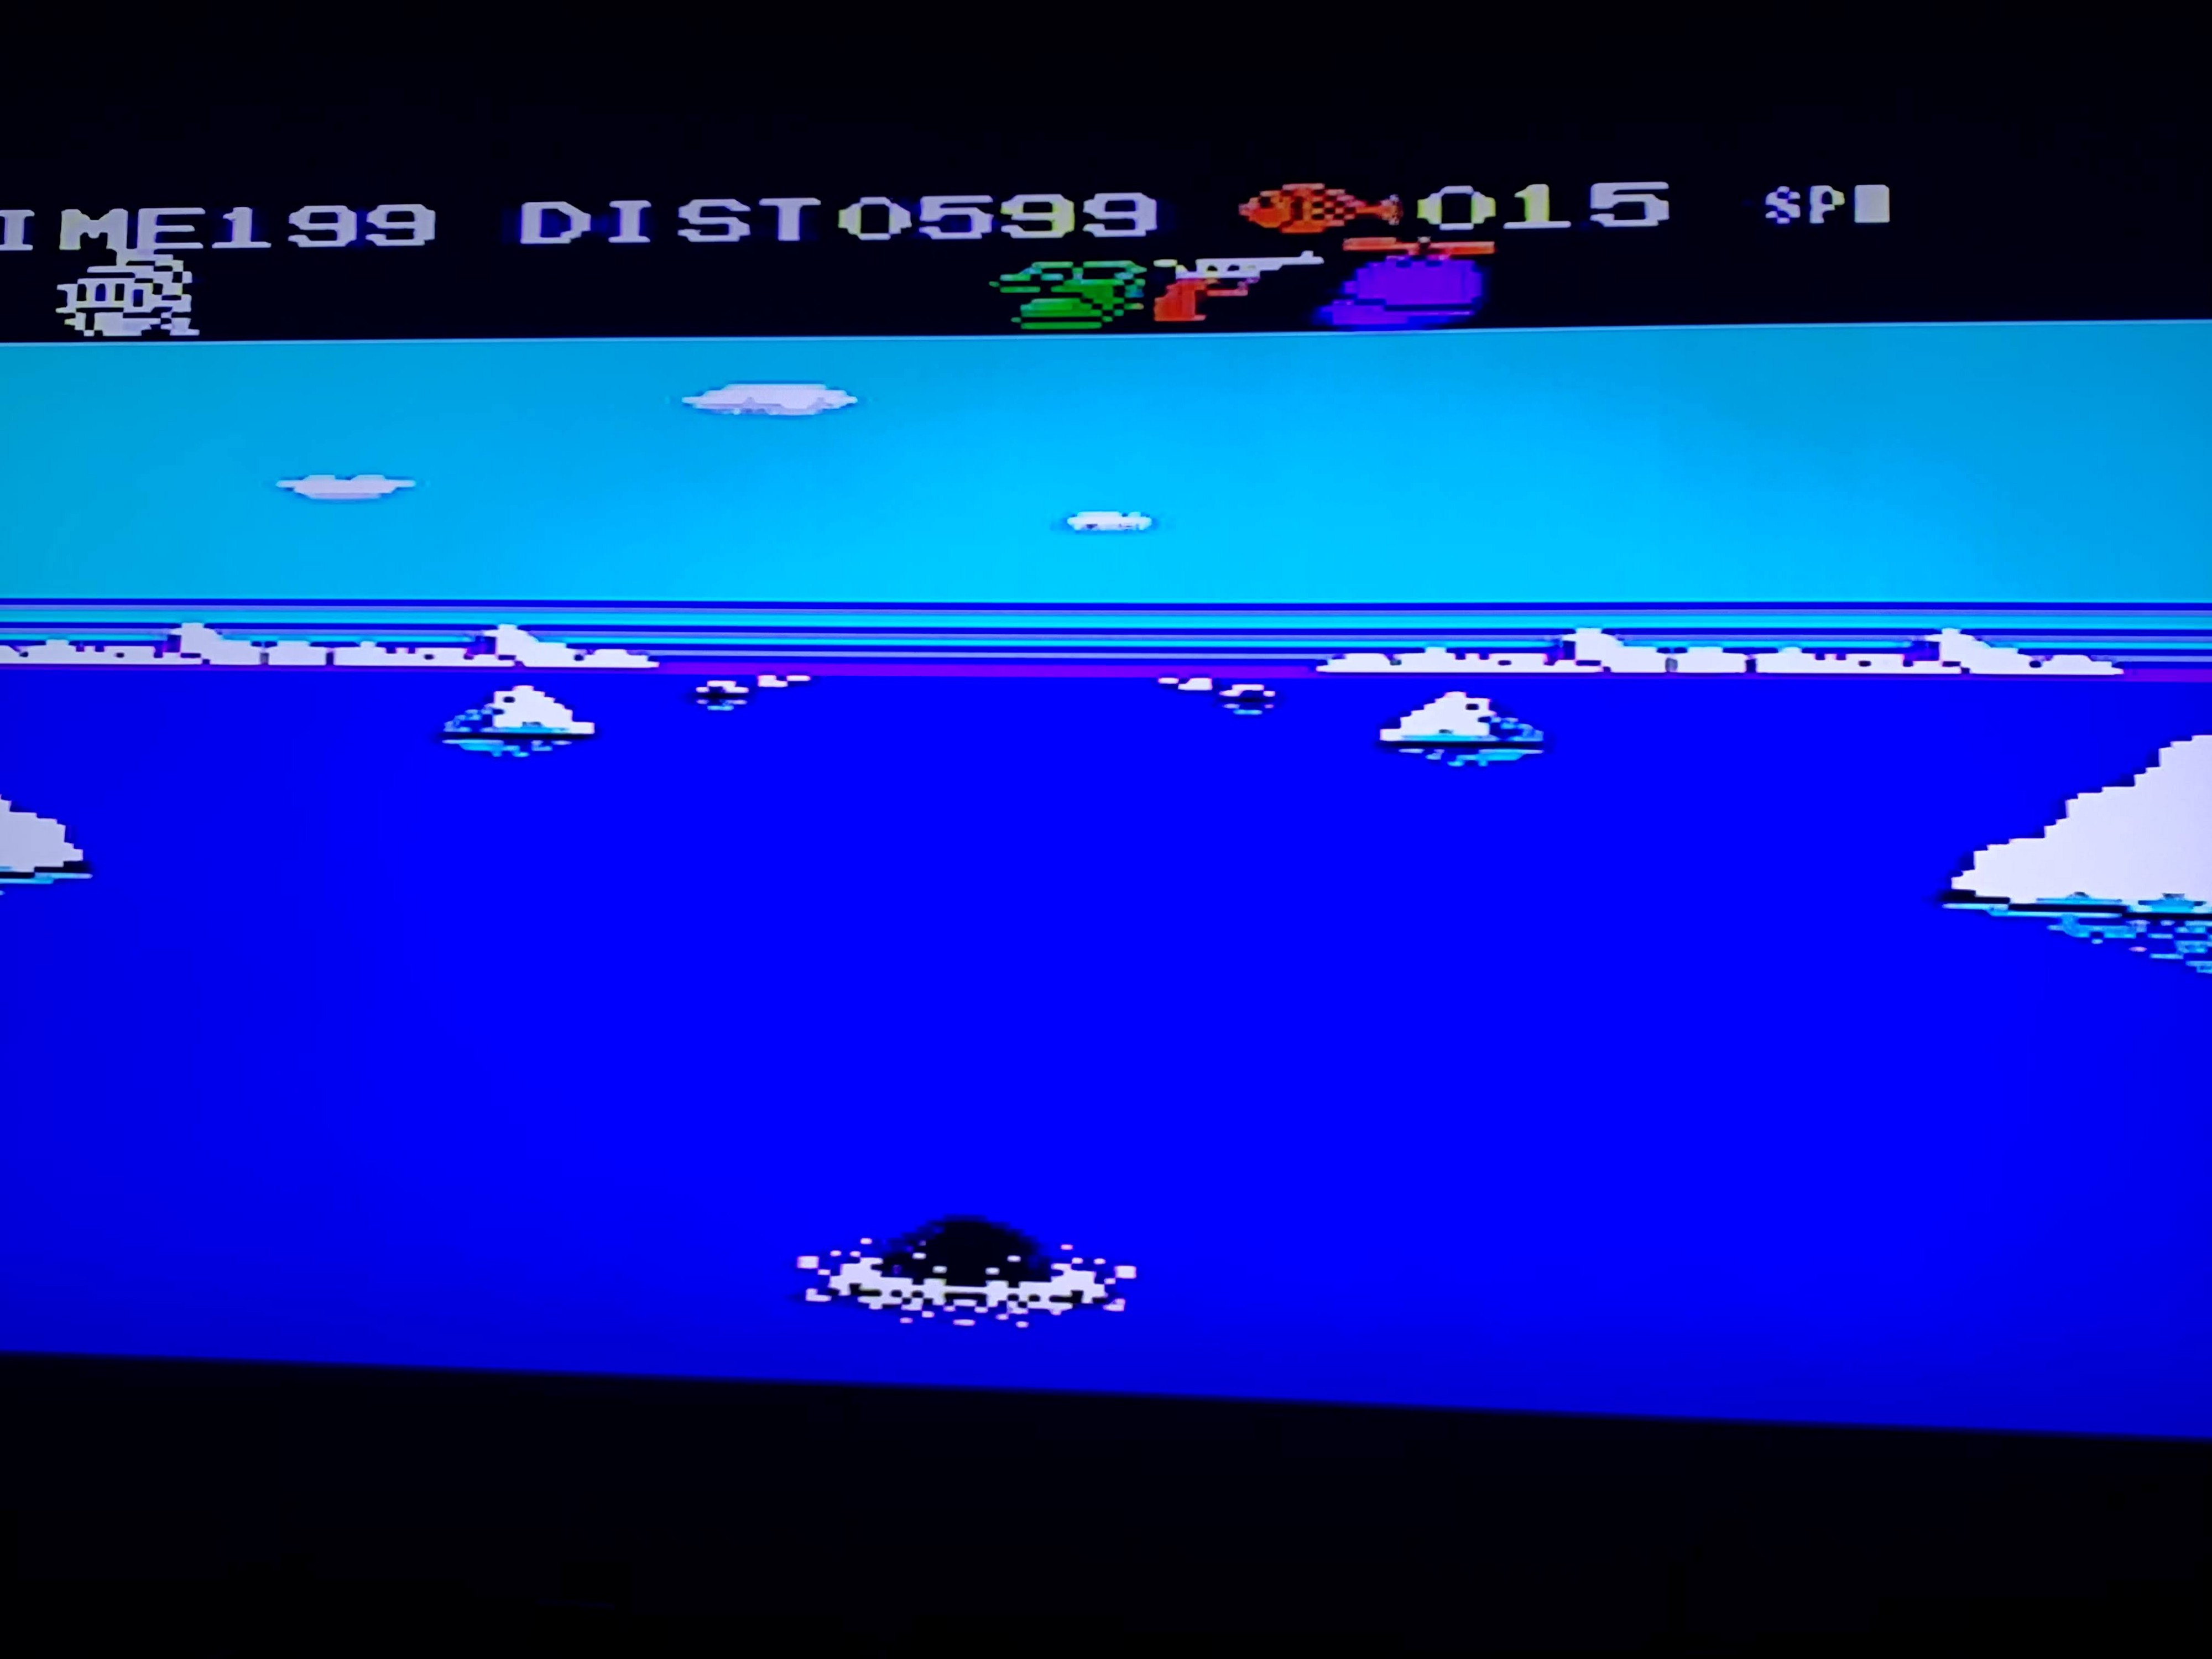 A scene from Penguin Adventure. The penguin is swimming through an arctic lake or ocean.